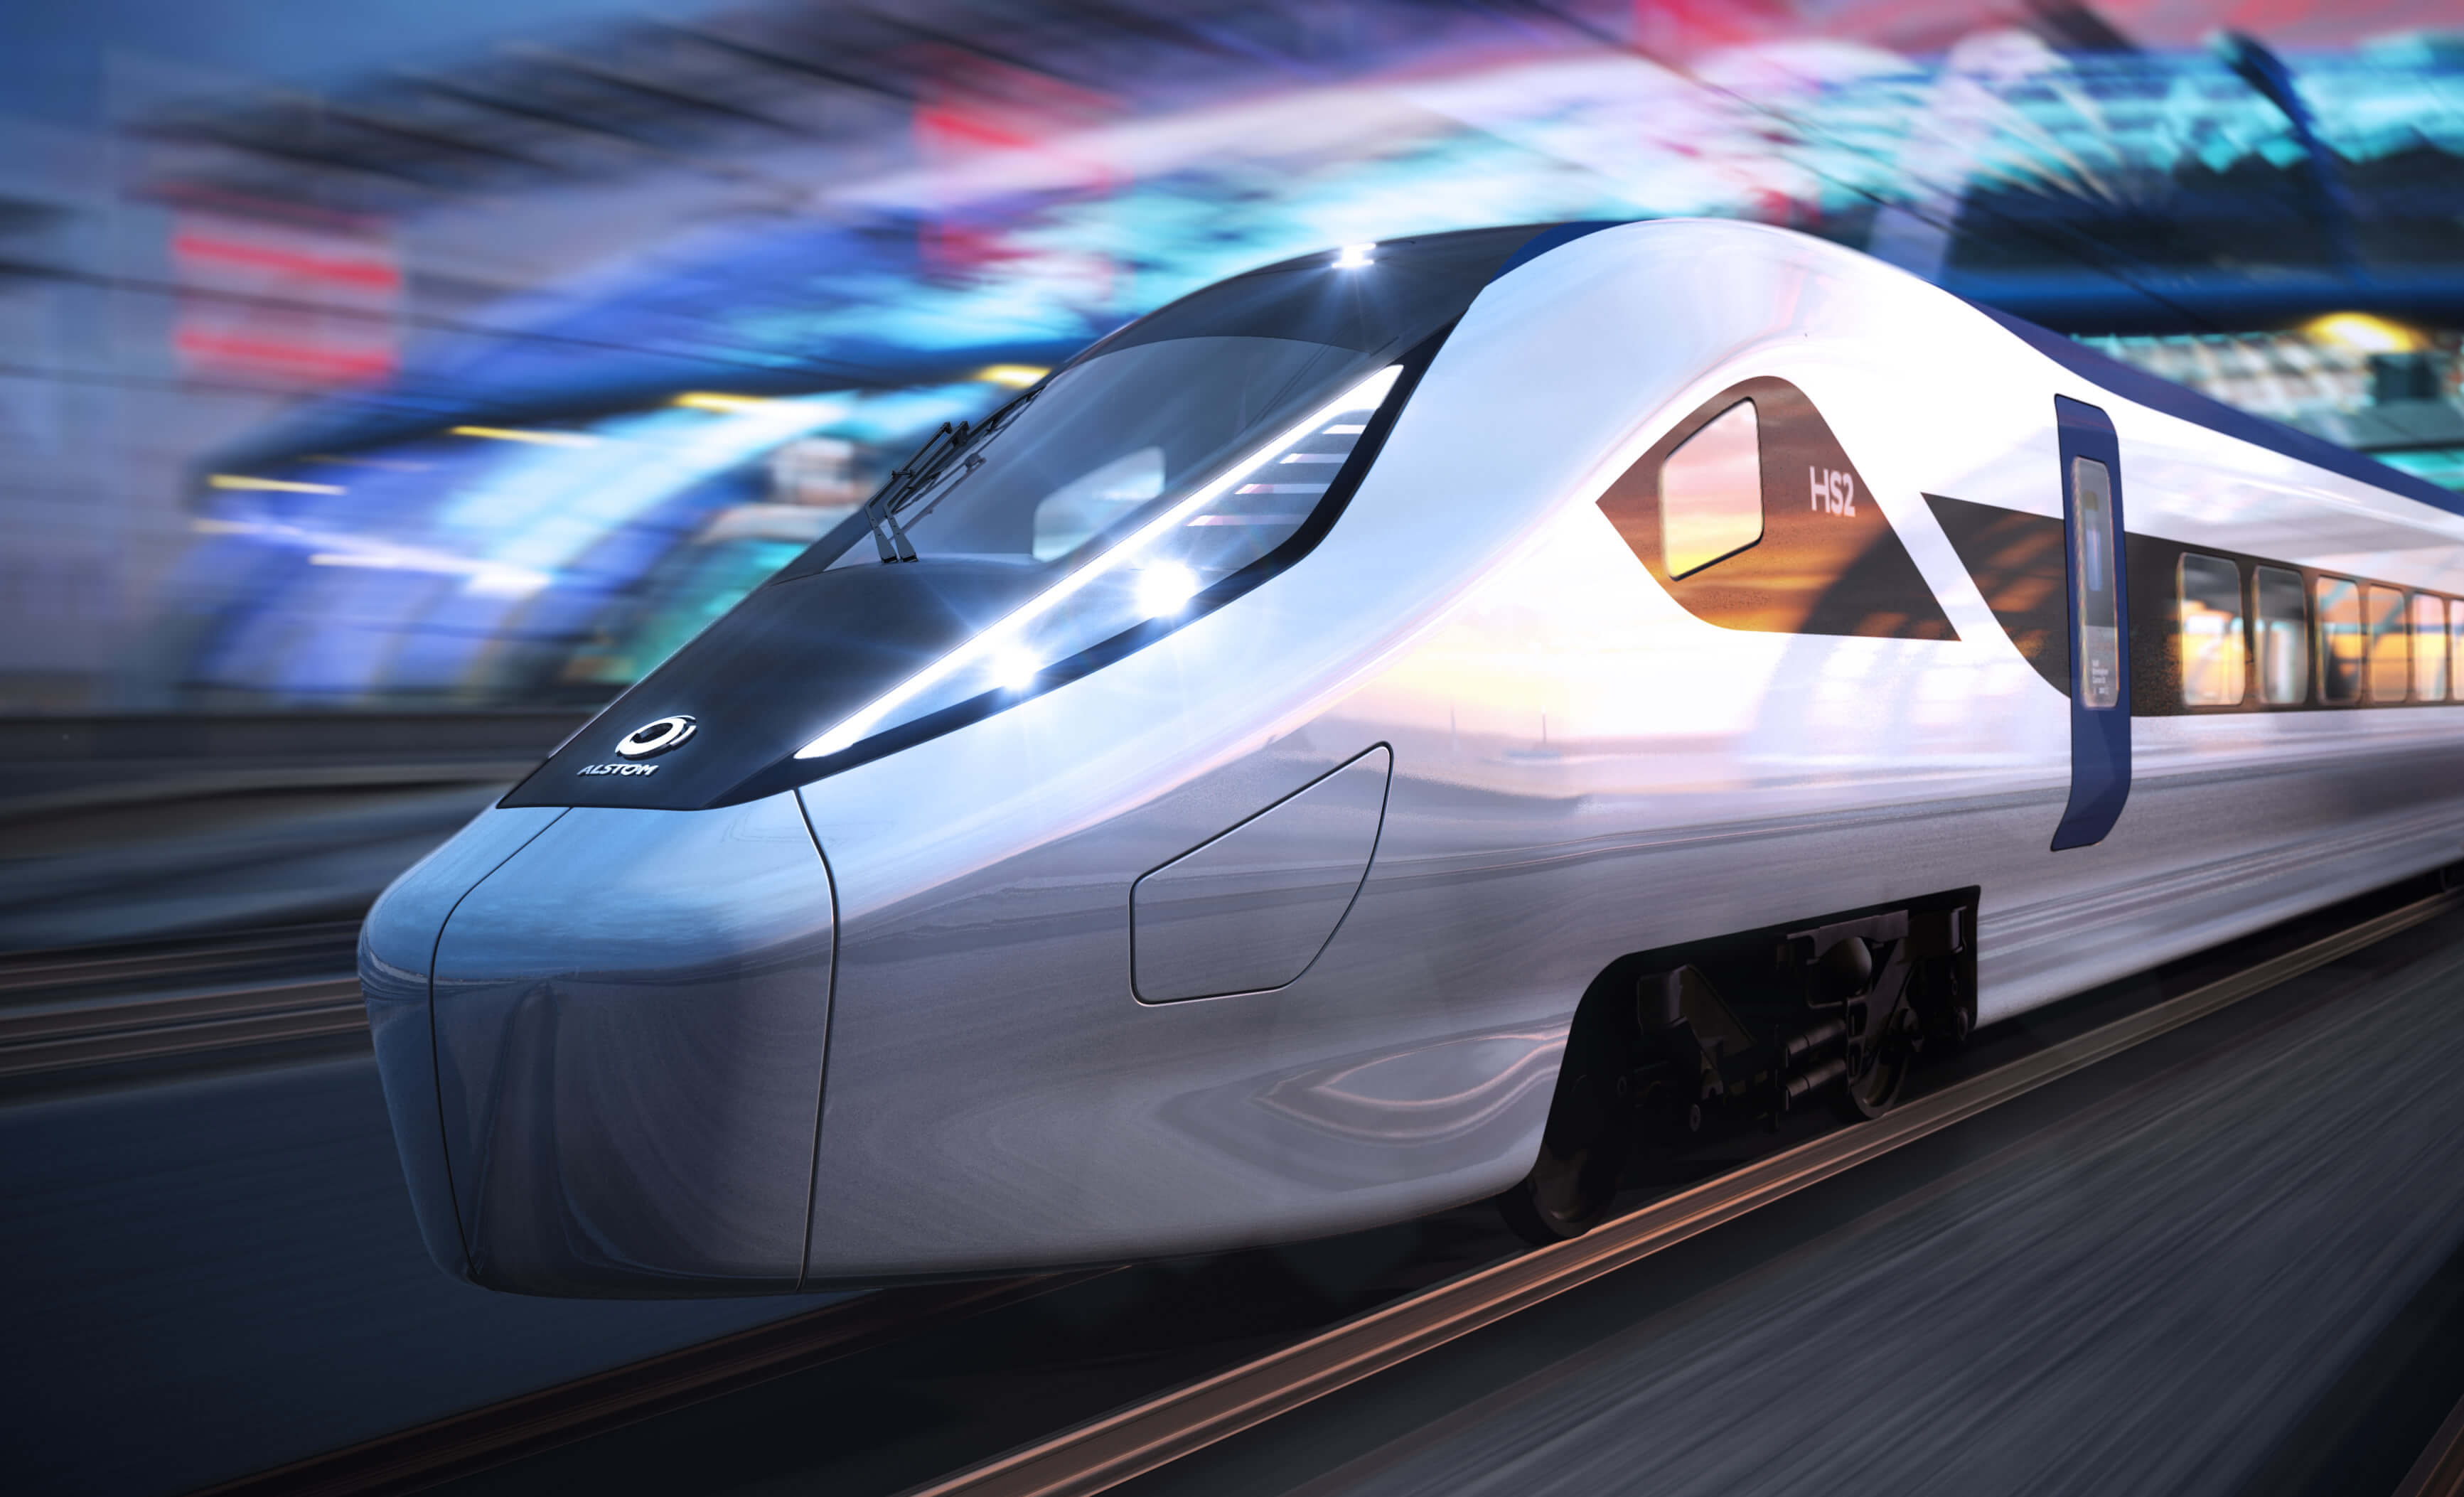 HS2 to award 18 contracts by 2022